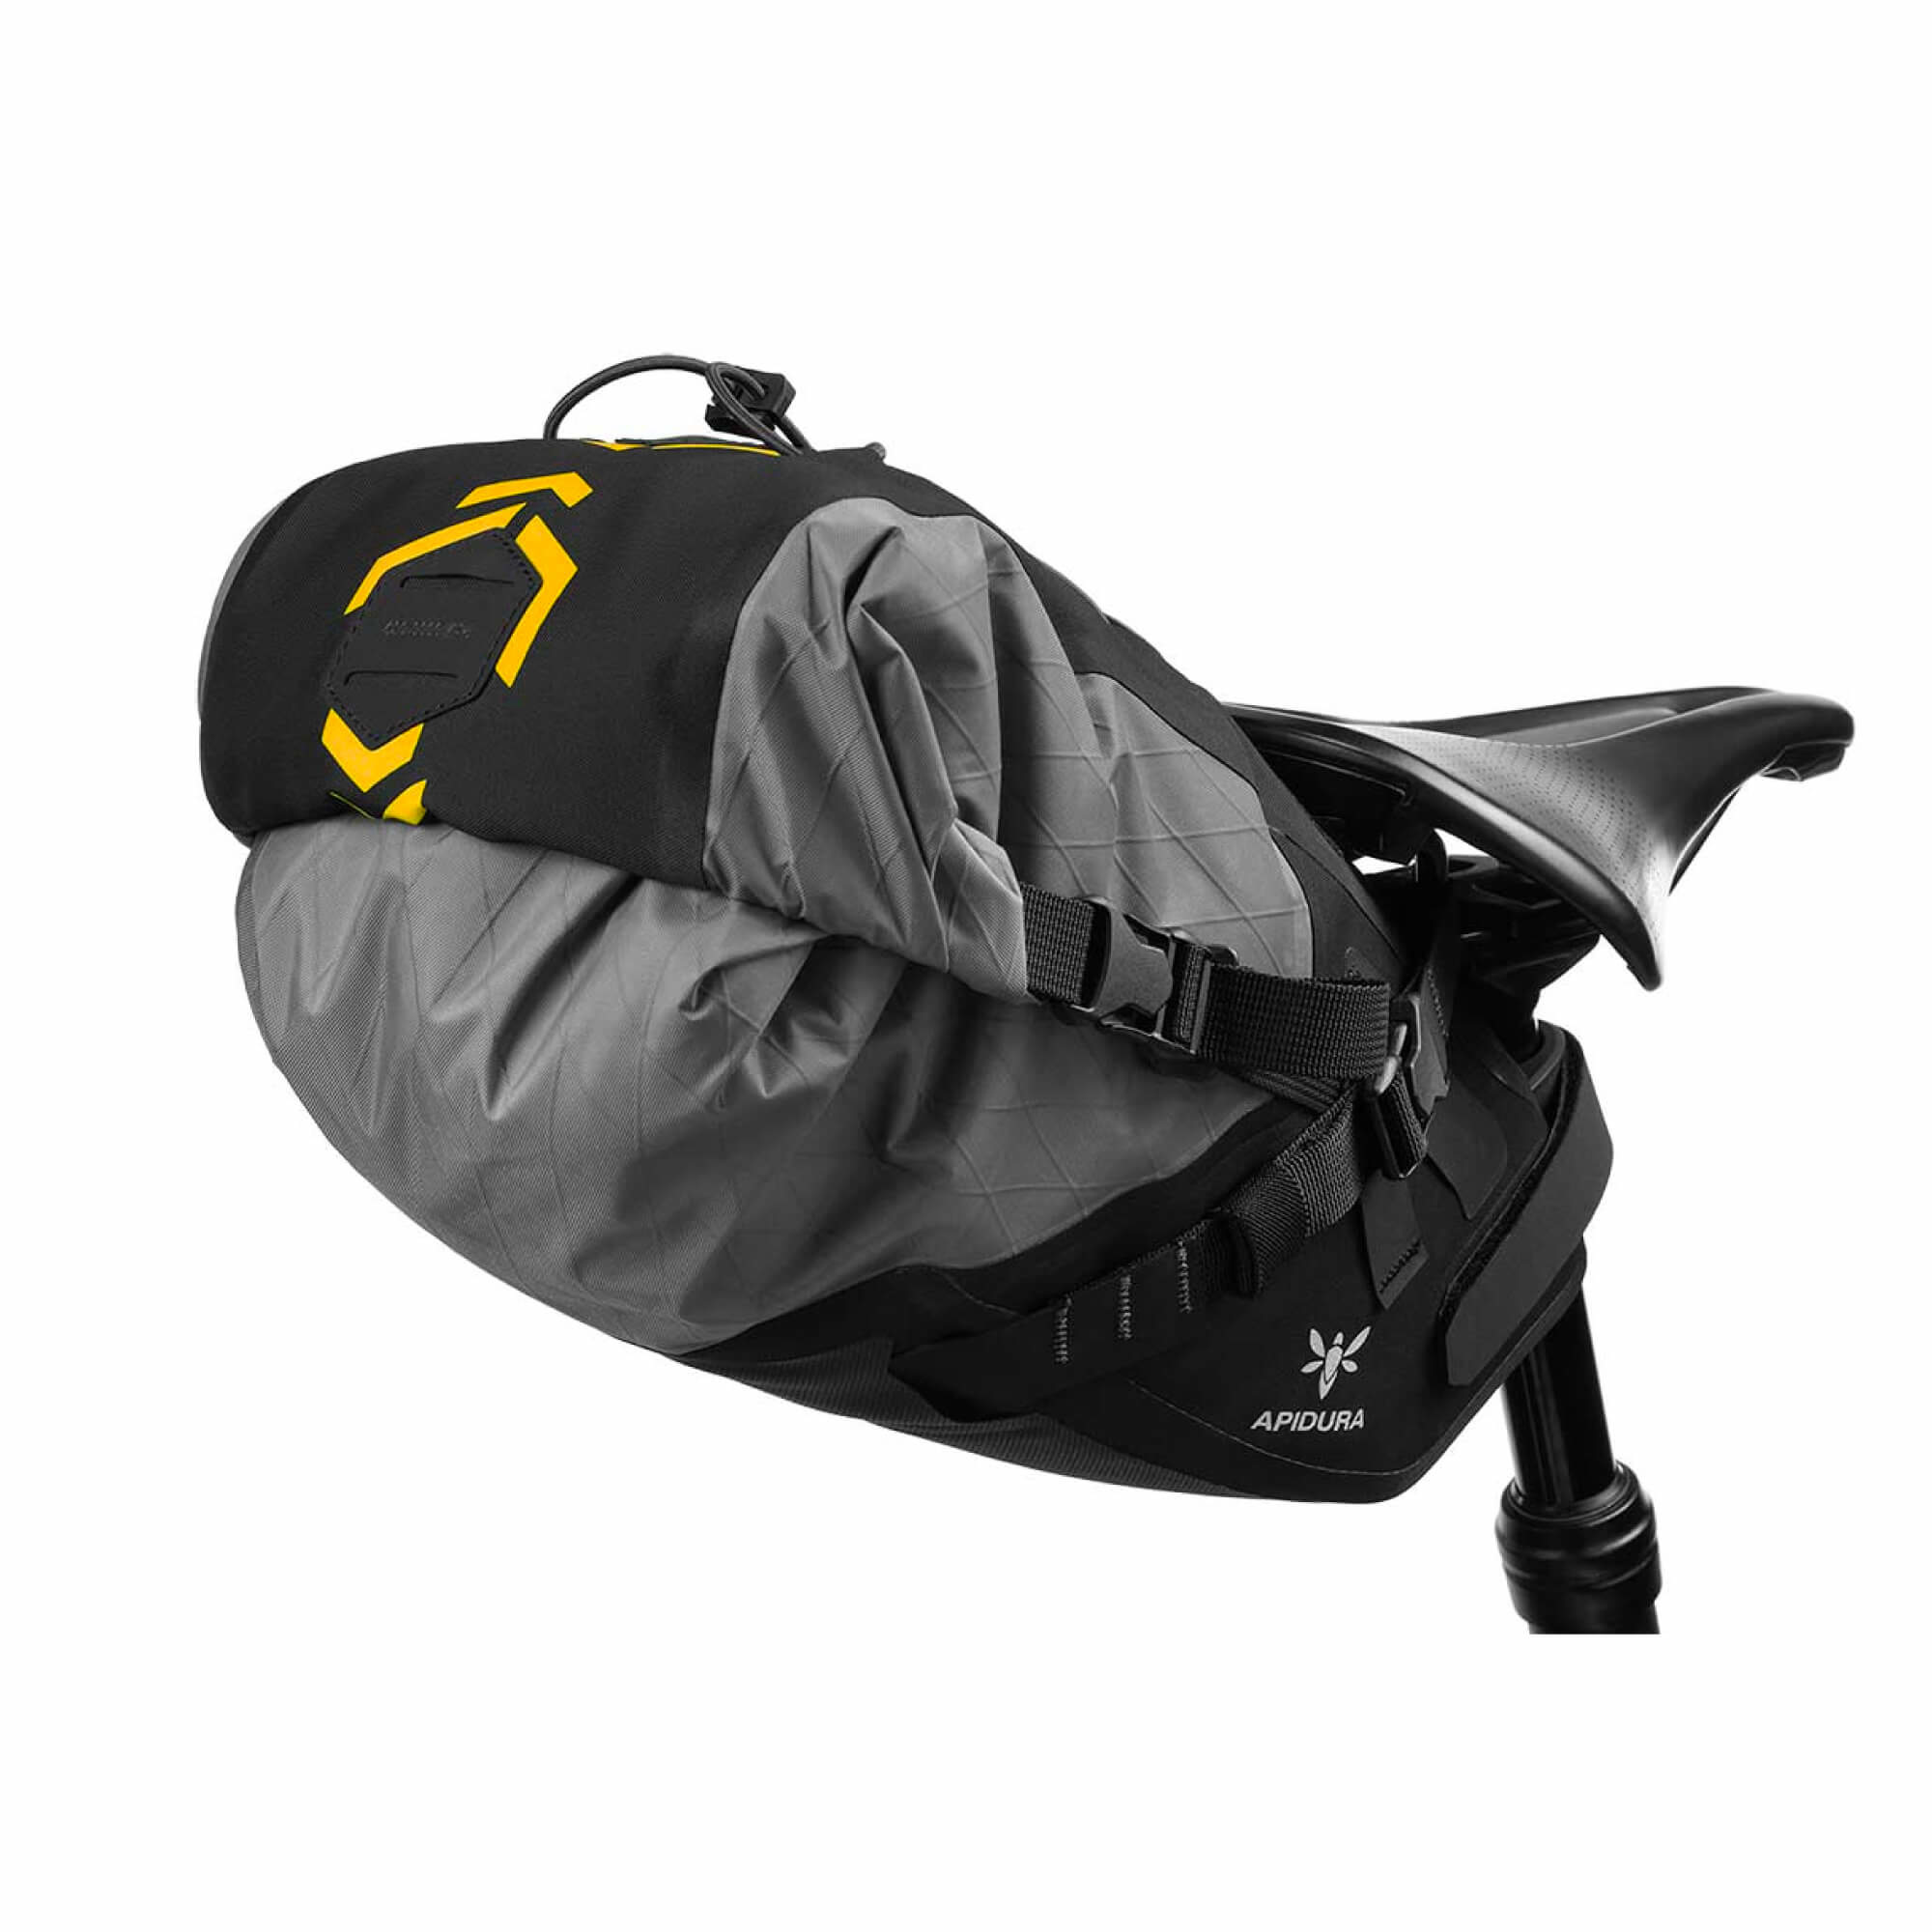 Backcountry2 Saddle Pack 6 L-5